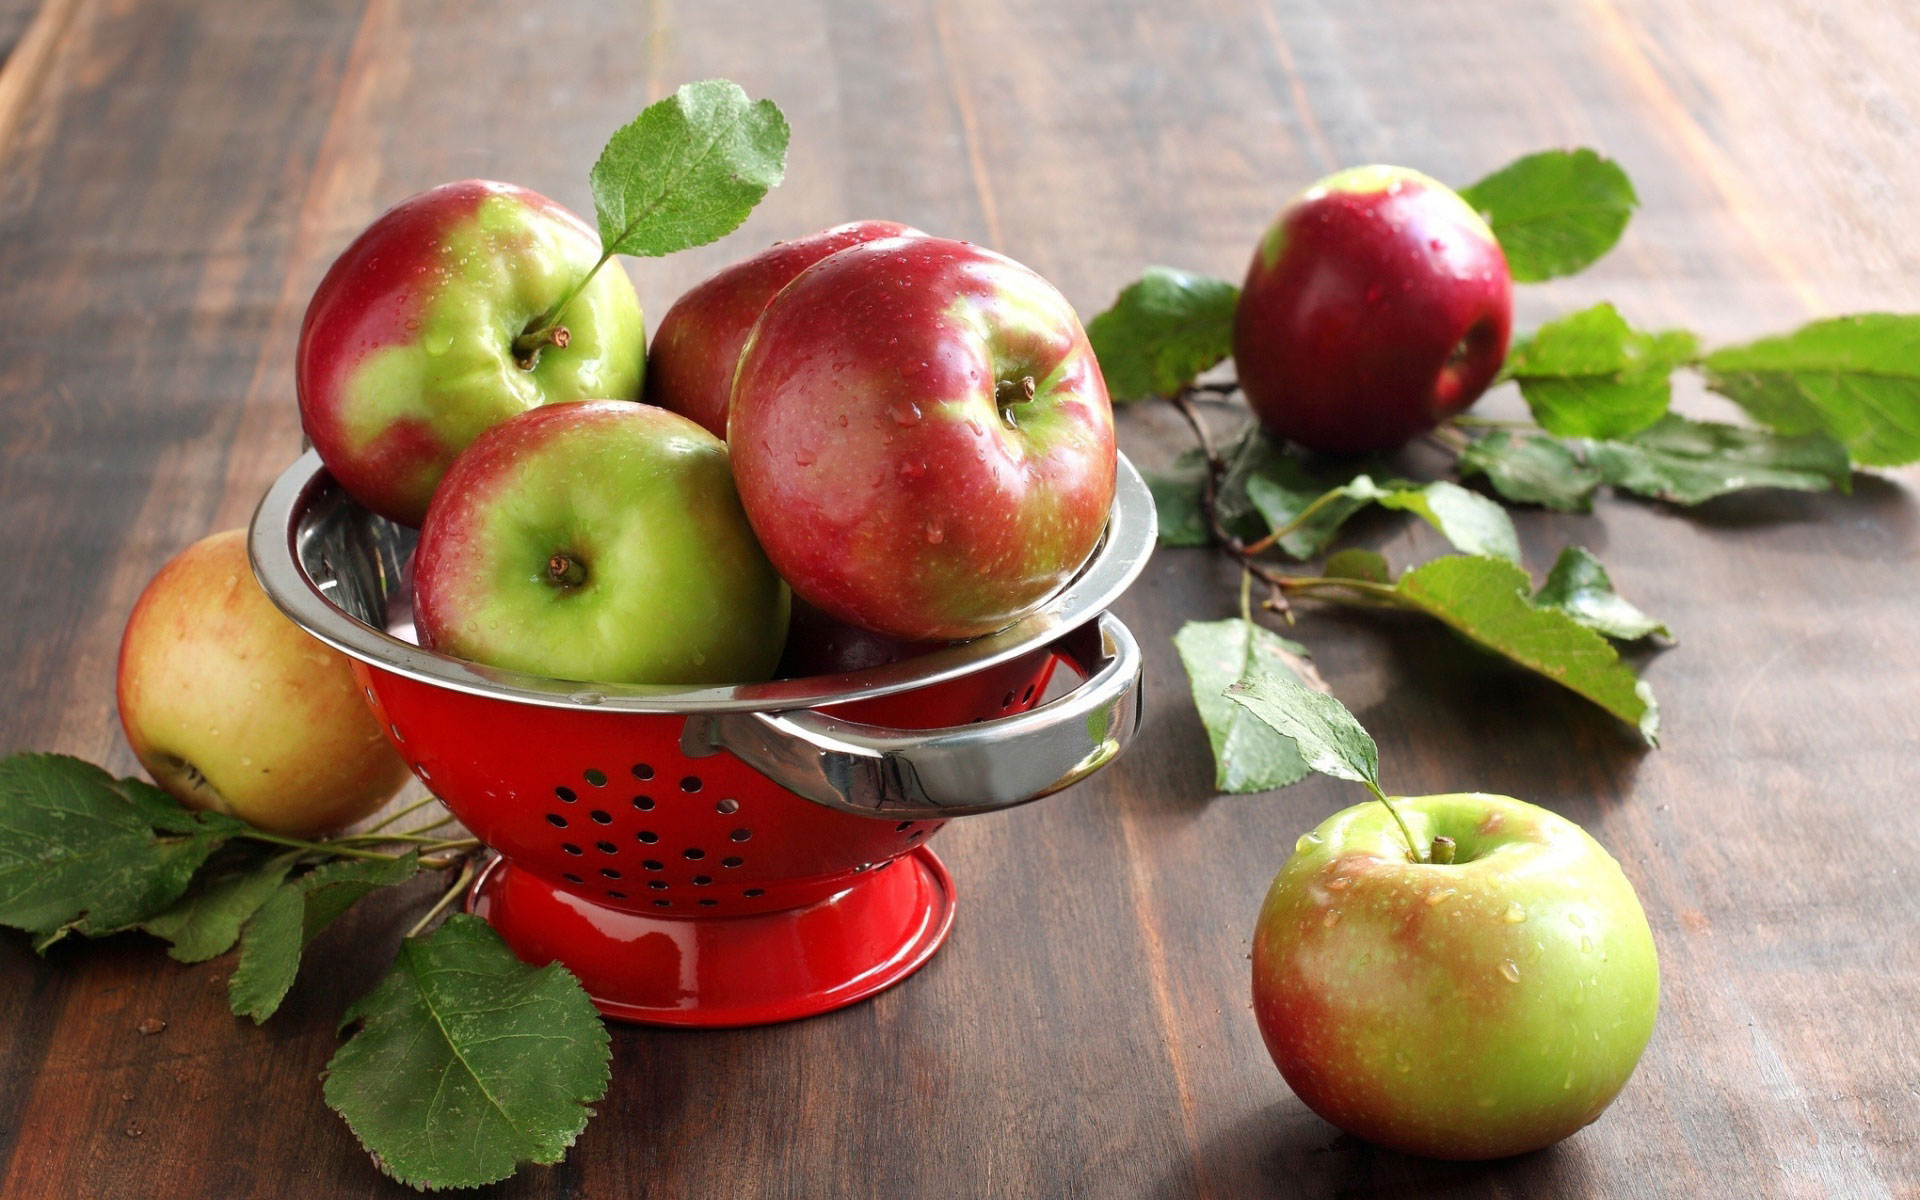 apples diversification Apple inc's (nasdaq:aapl) september is about to get a whole lot more crowded the company has pushed up its launch plans for its rumored iwatch, which will be introduced at a sept 9 media event.